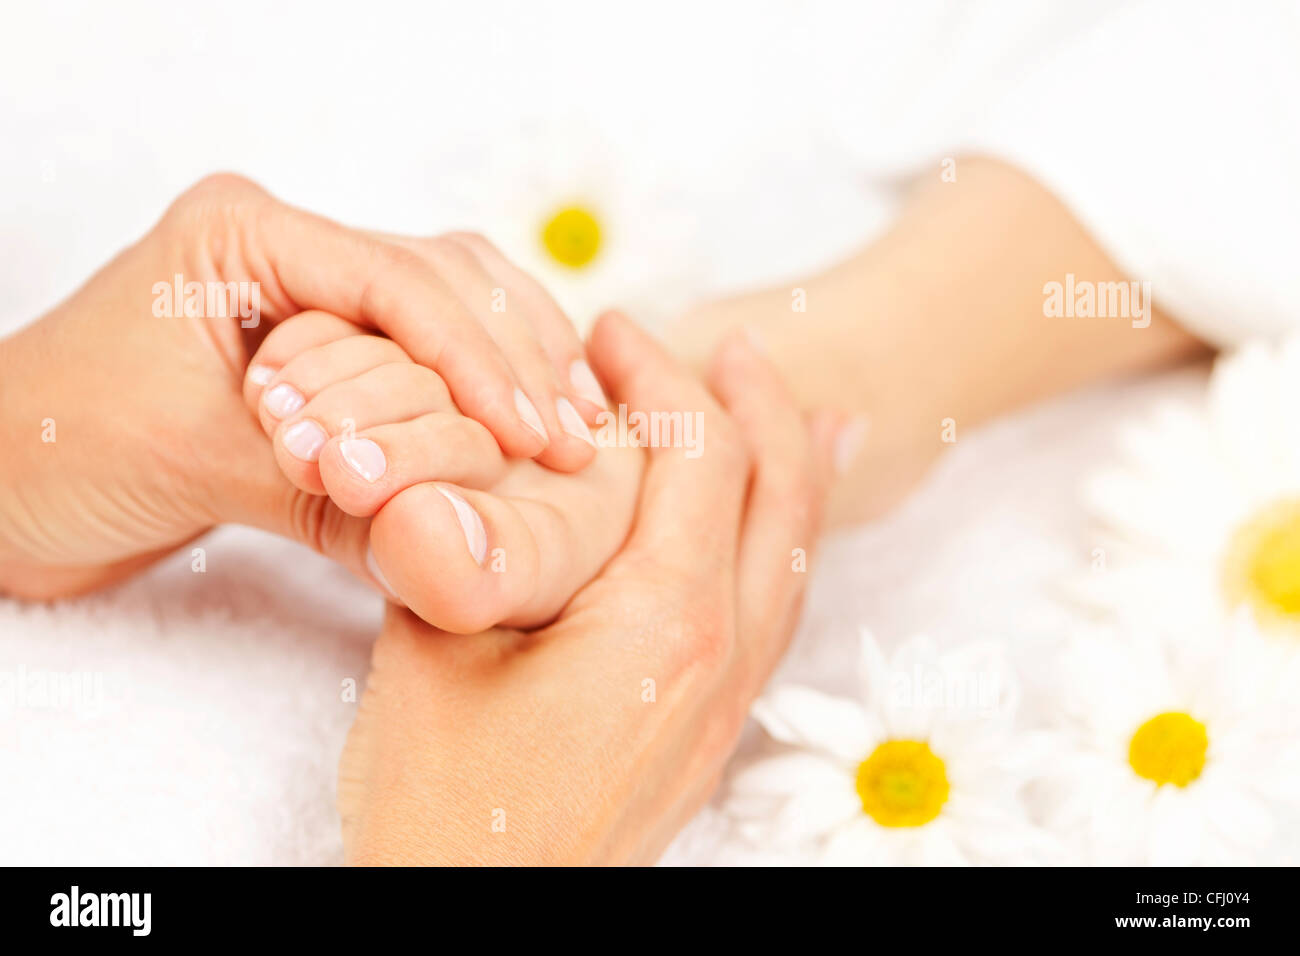 Female hands giving massage to soft bare foot - Stock Image